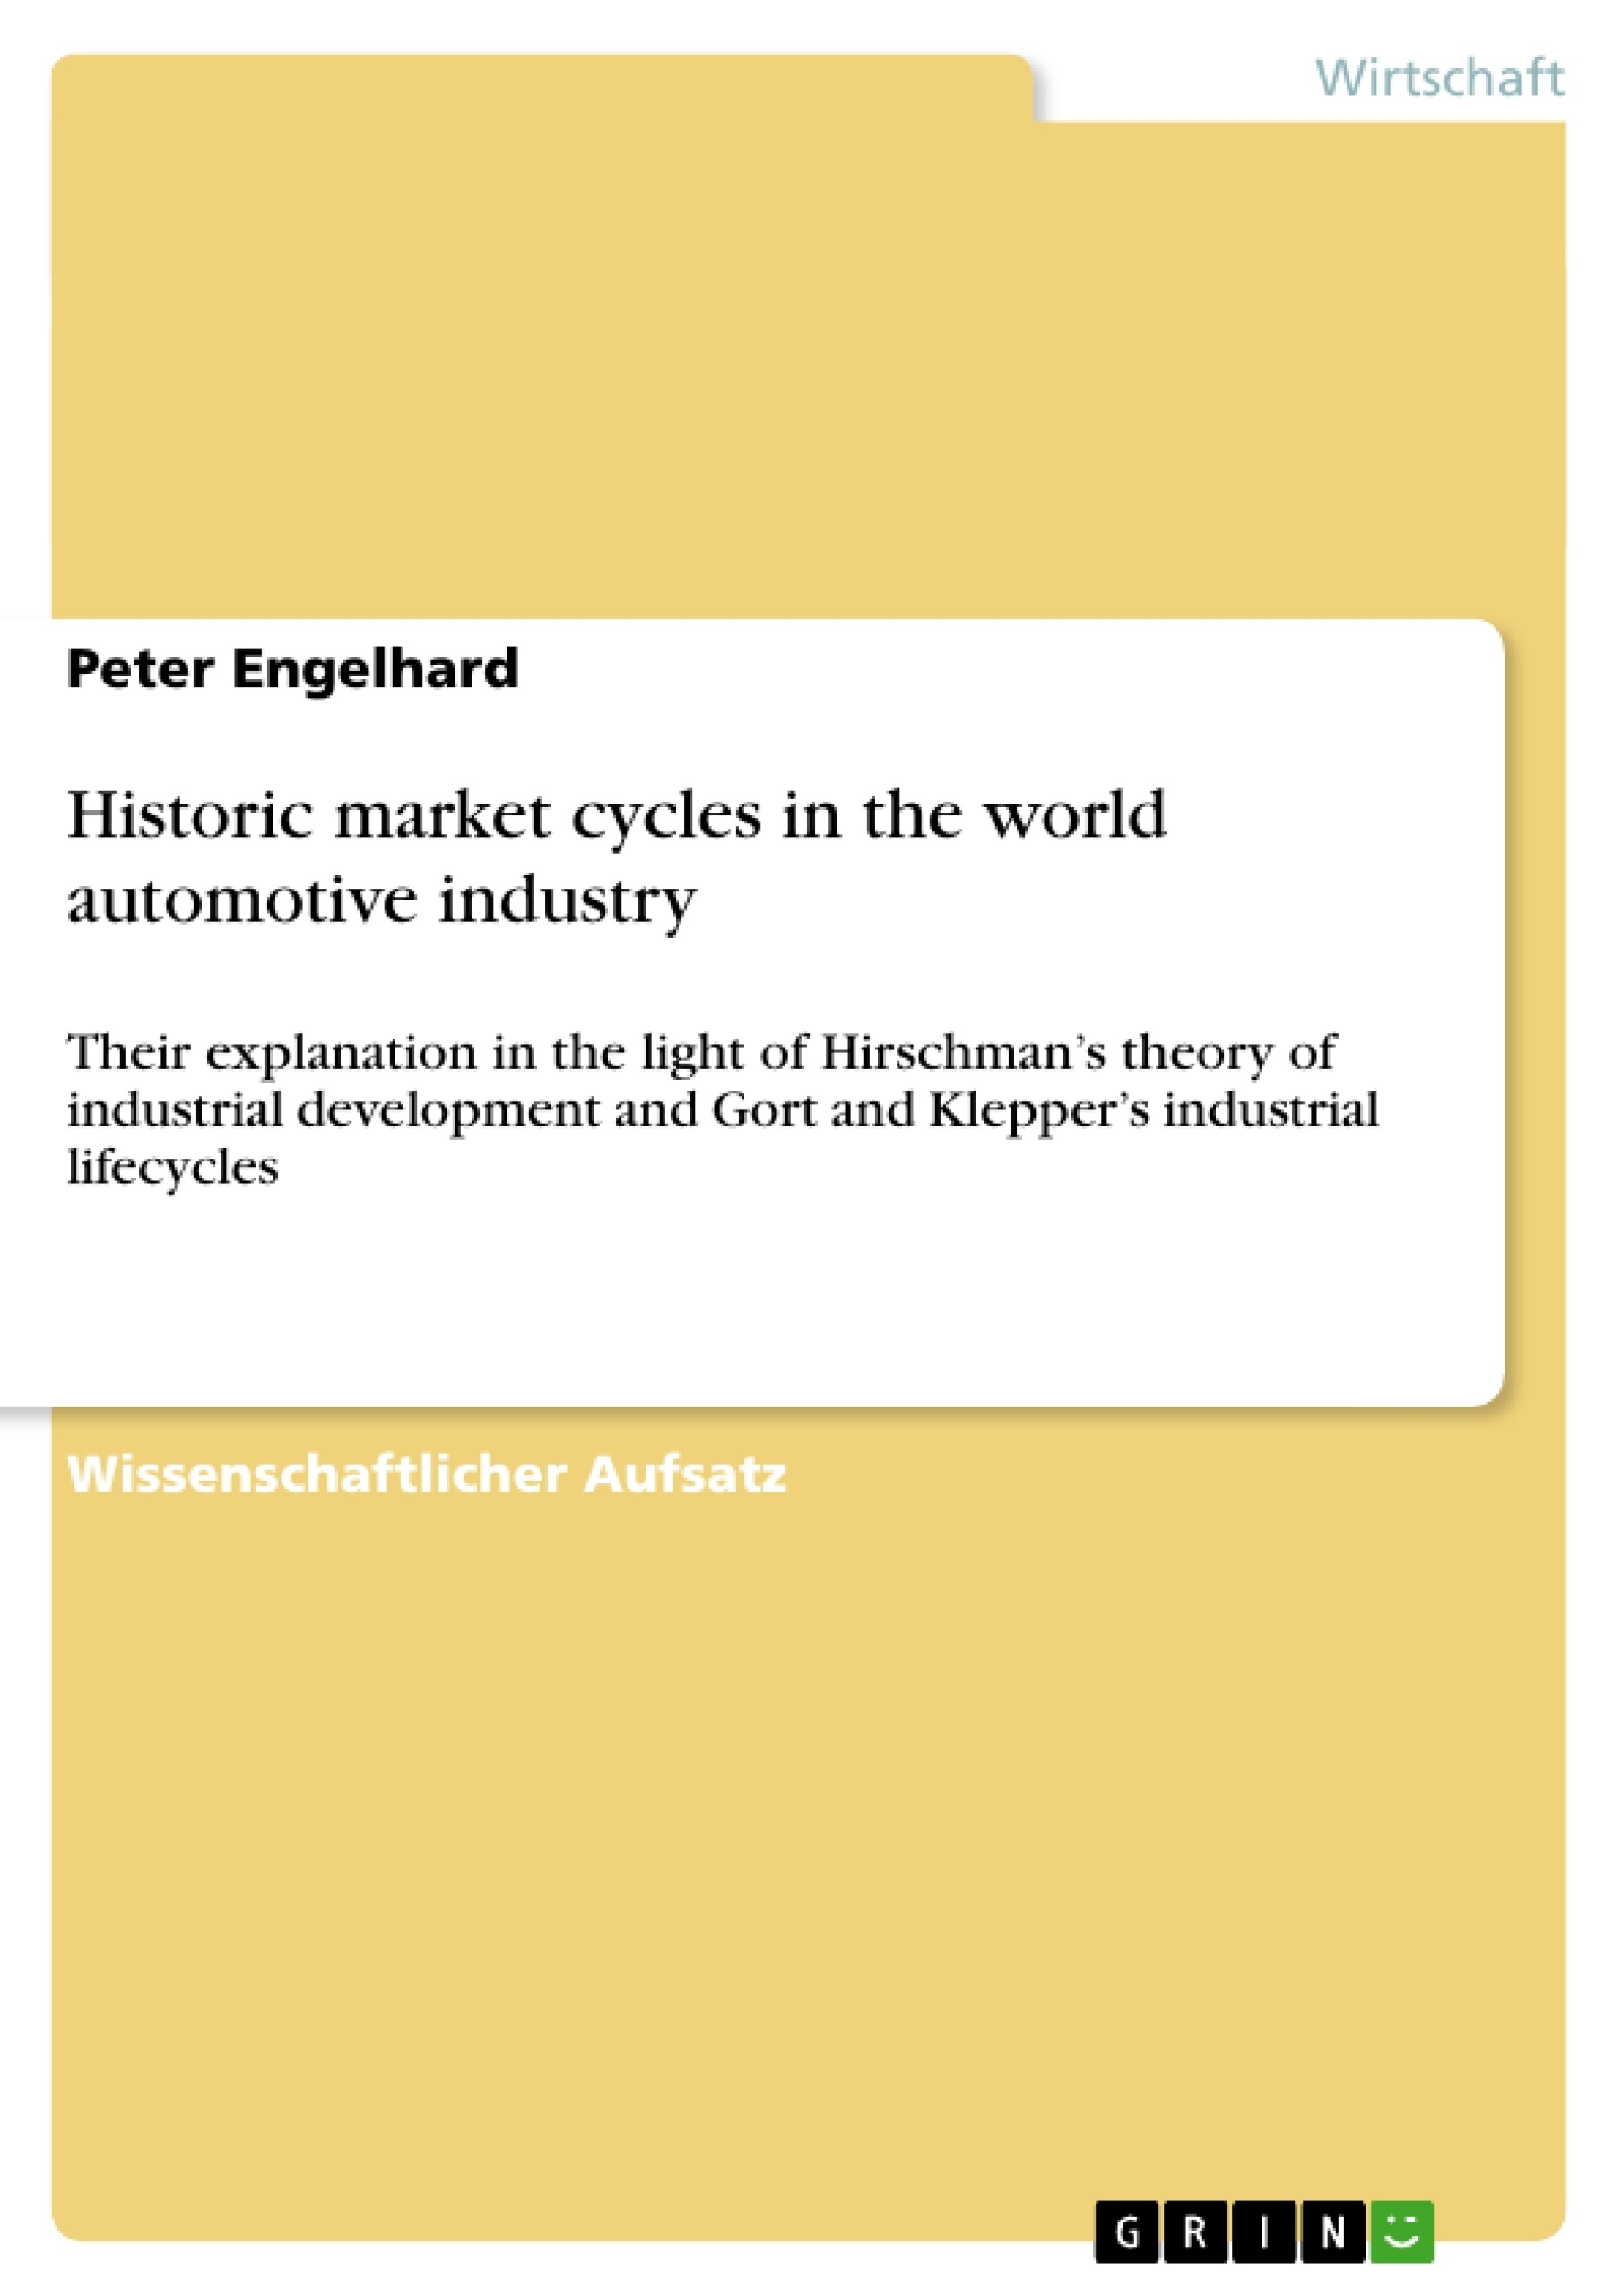 Titel: Historic market cycles in the world automotive industry